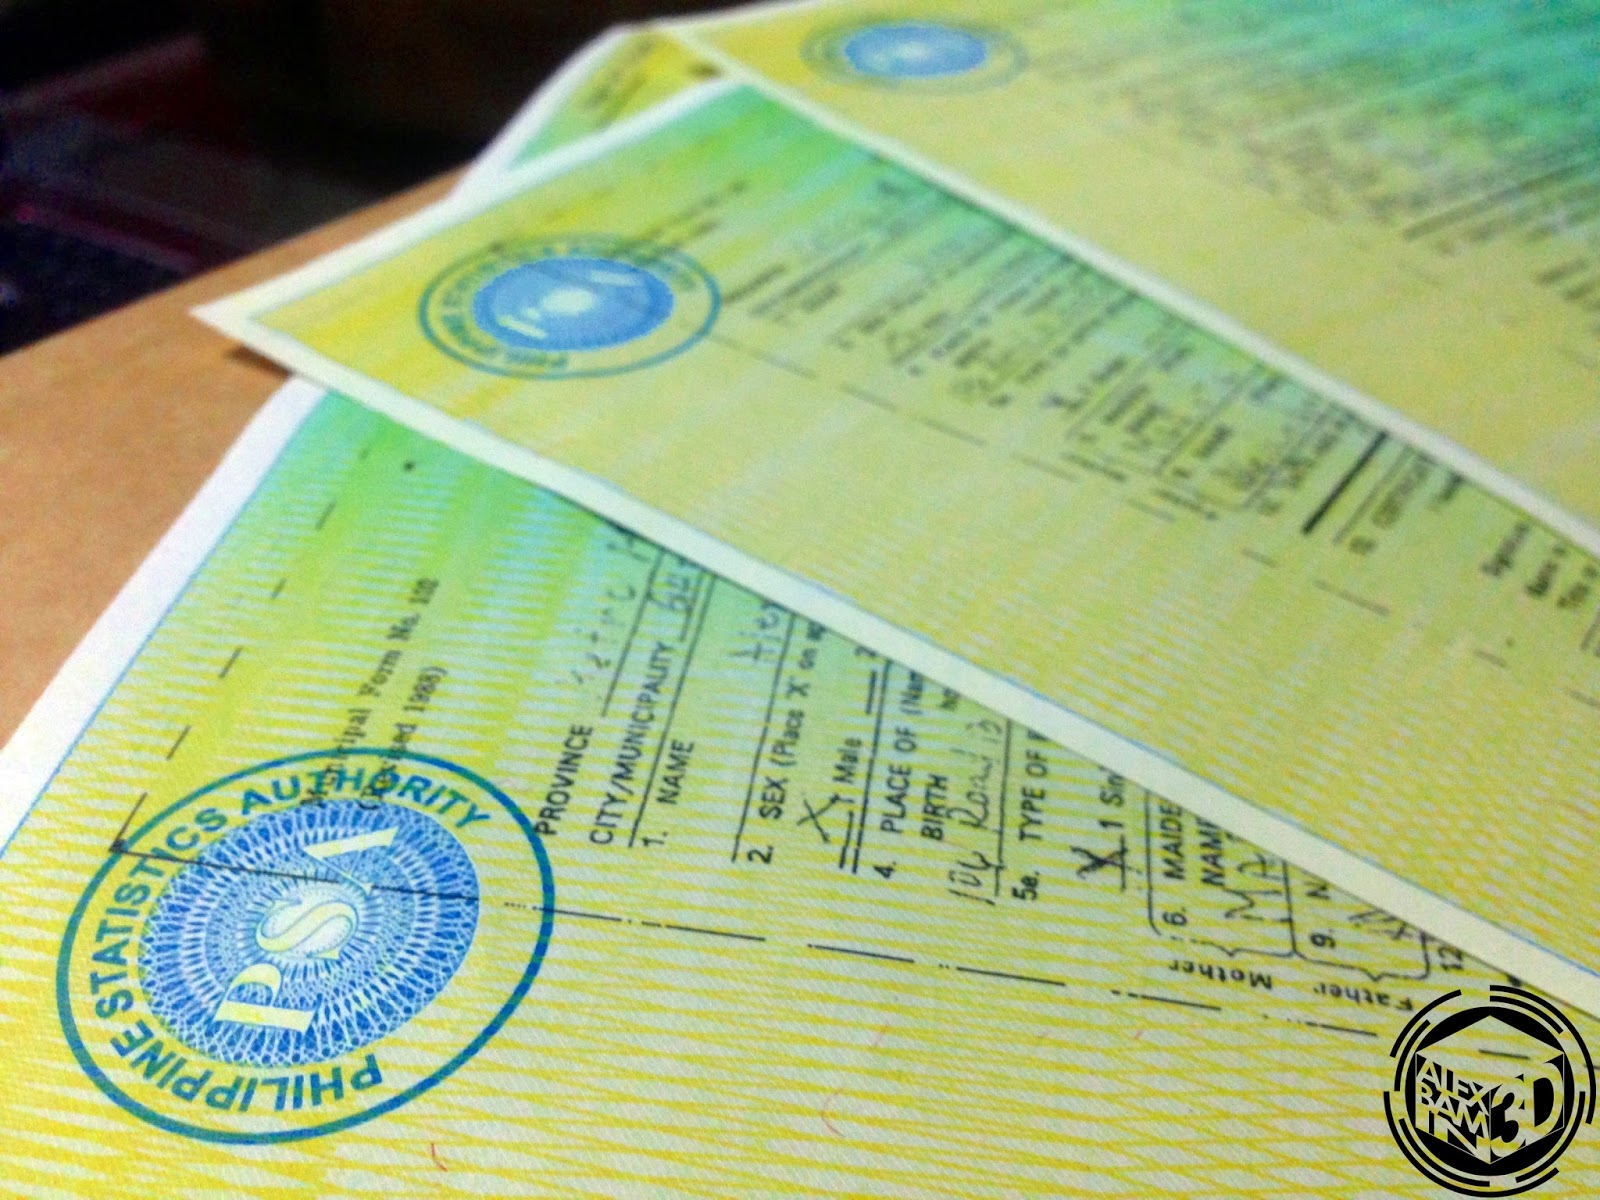 Getting your nso birth certificate at sm business center alexbamin3d i recently found myself missing a copy of my nso certified birth certificate i realized i gave out the last one i have when i applied for the new postal id aiddatafo Gallery